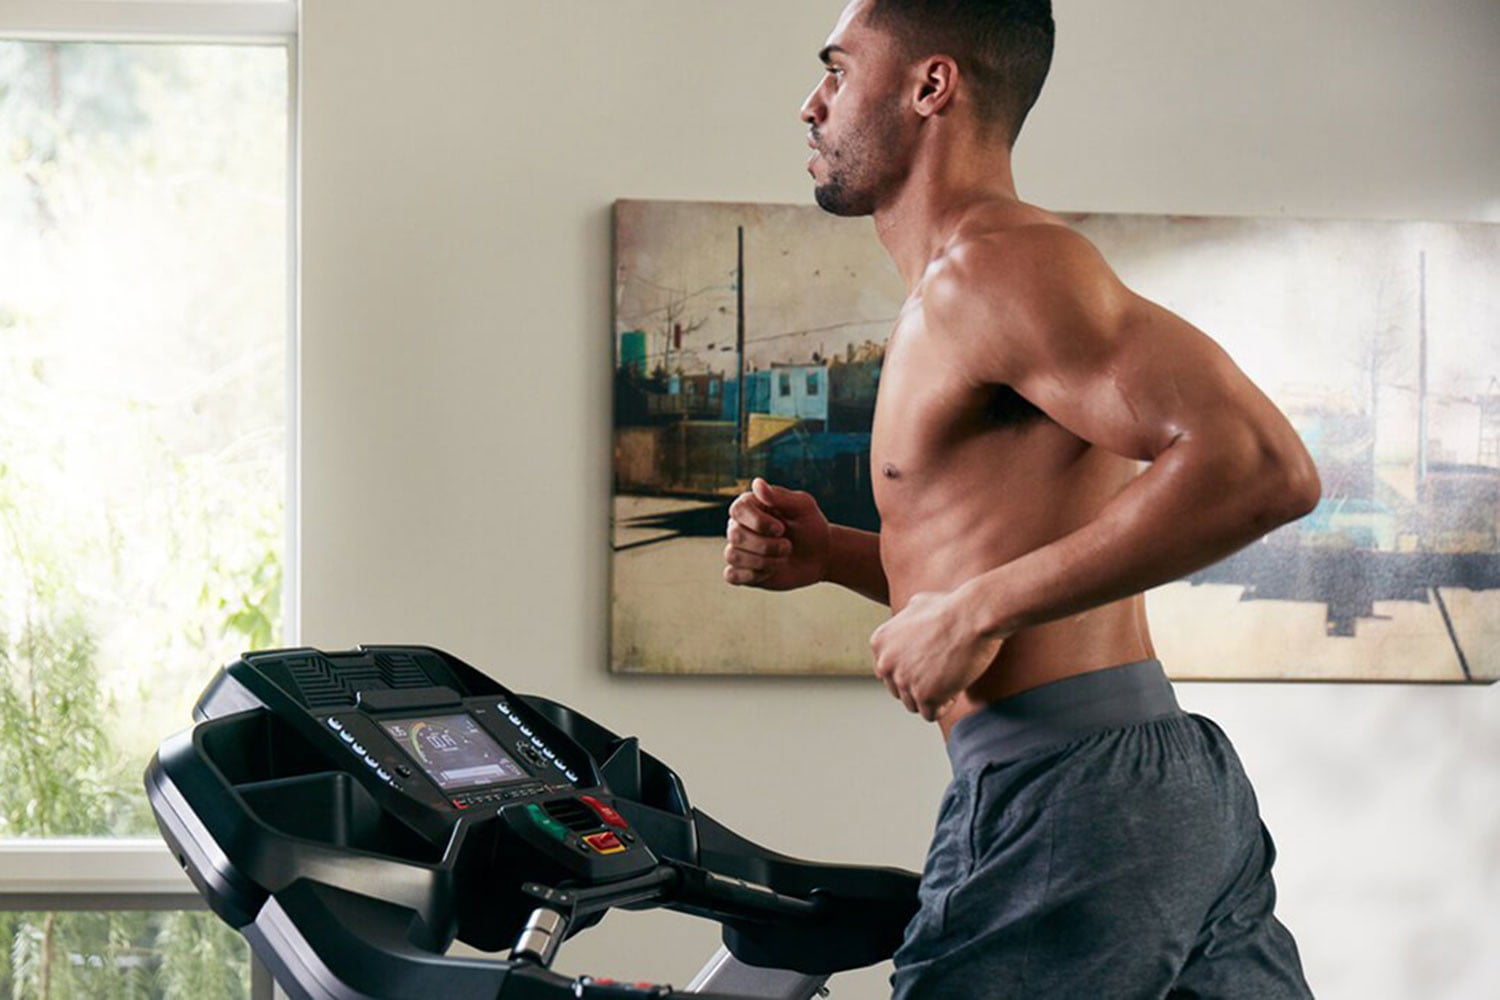 Working out at home? Check out these deals on treadmills